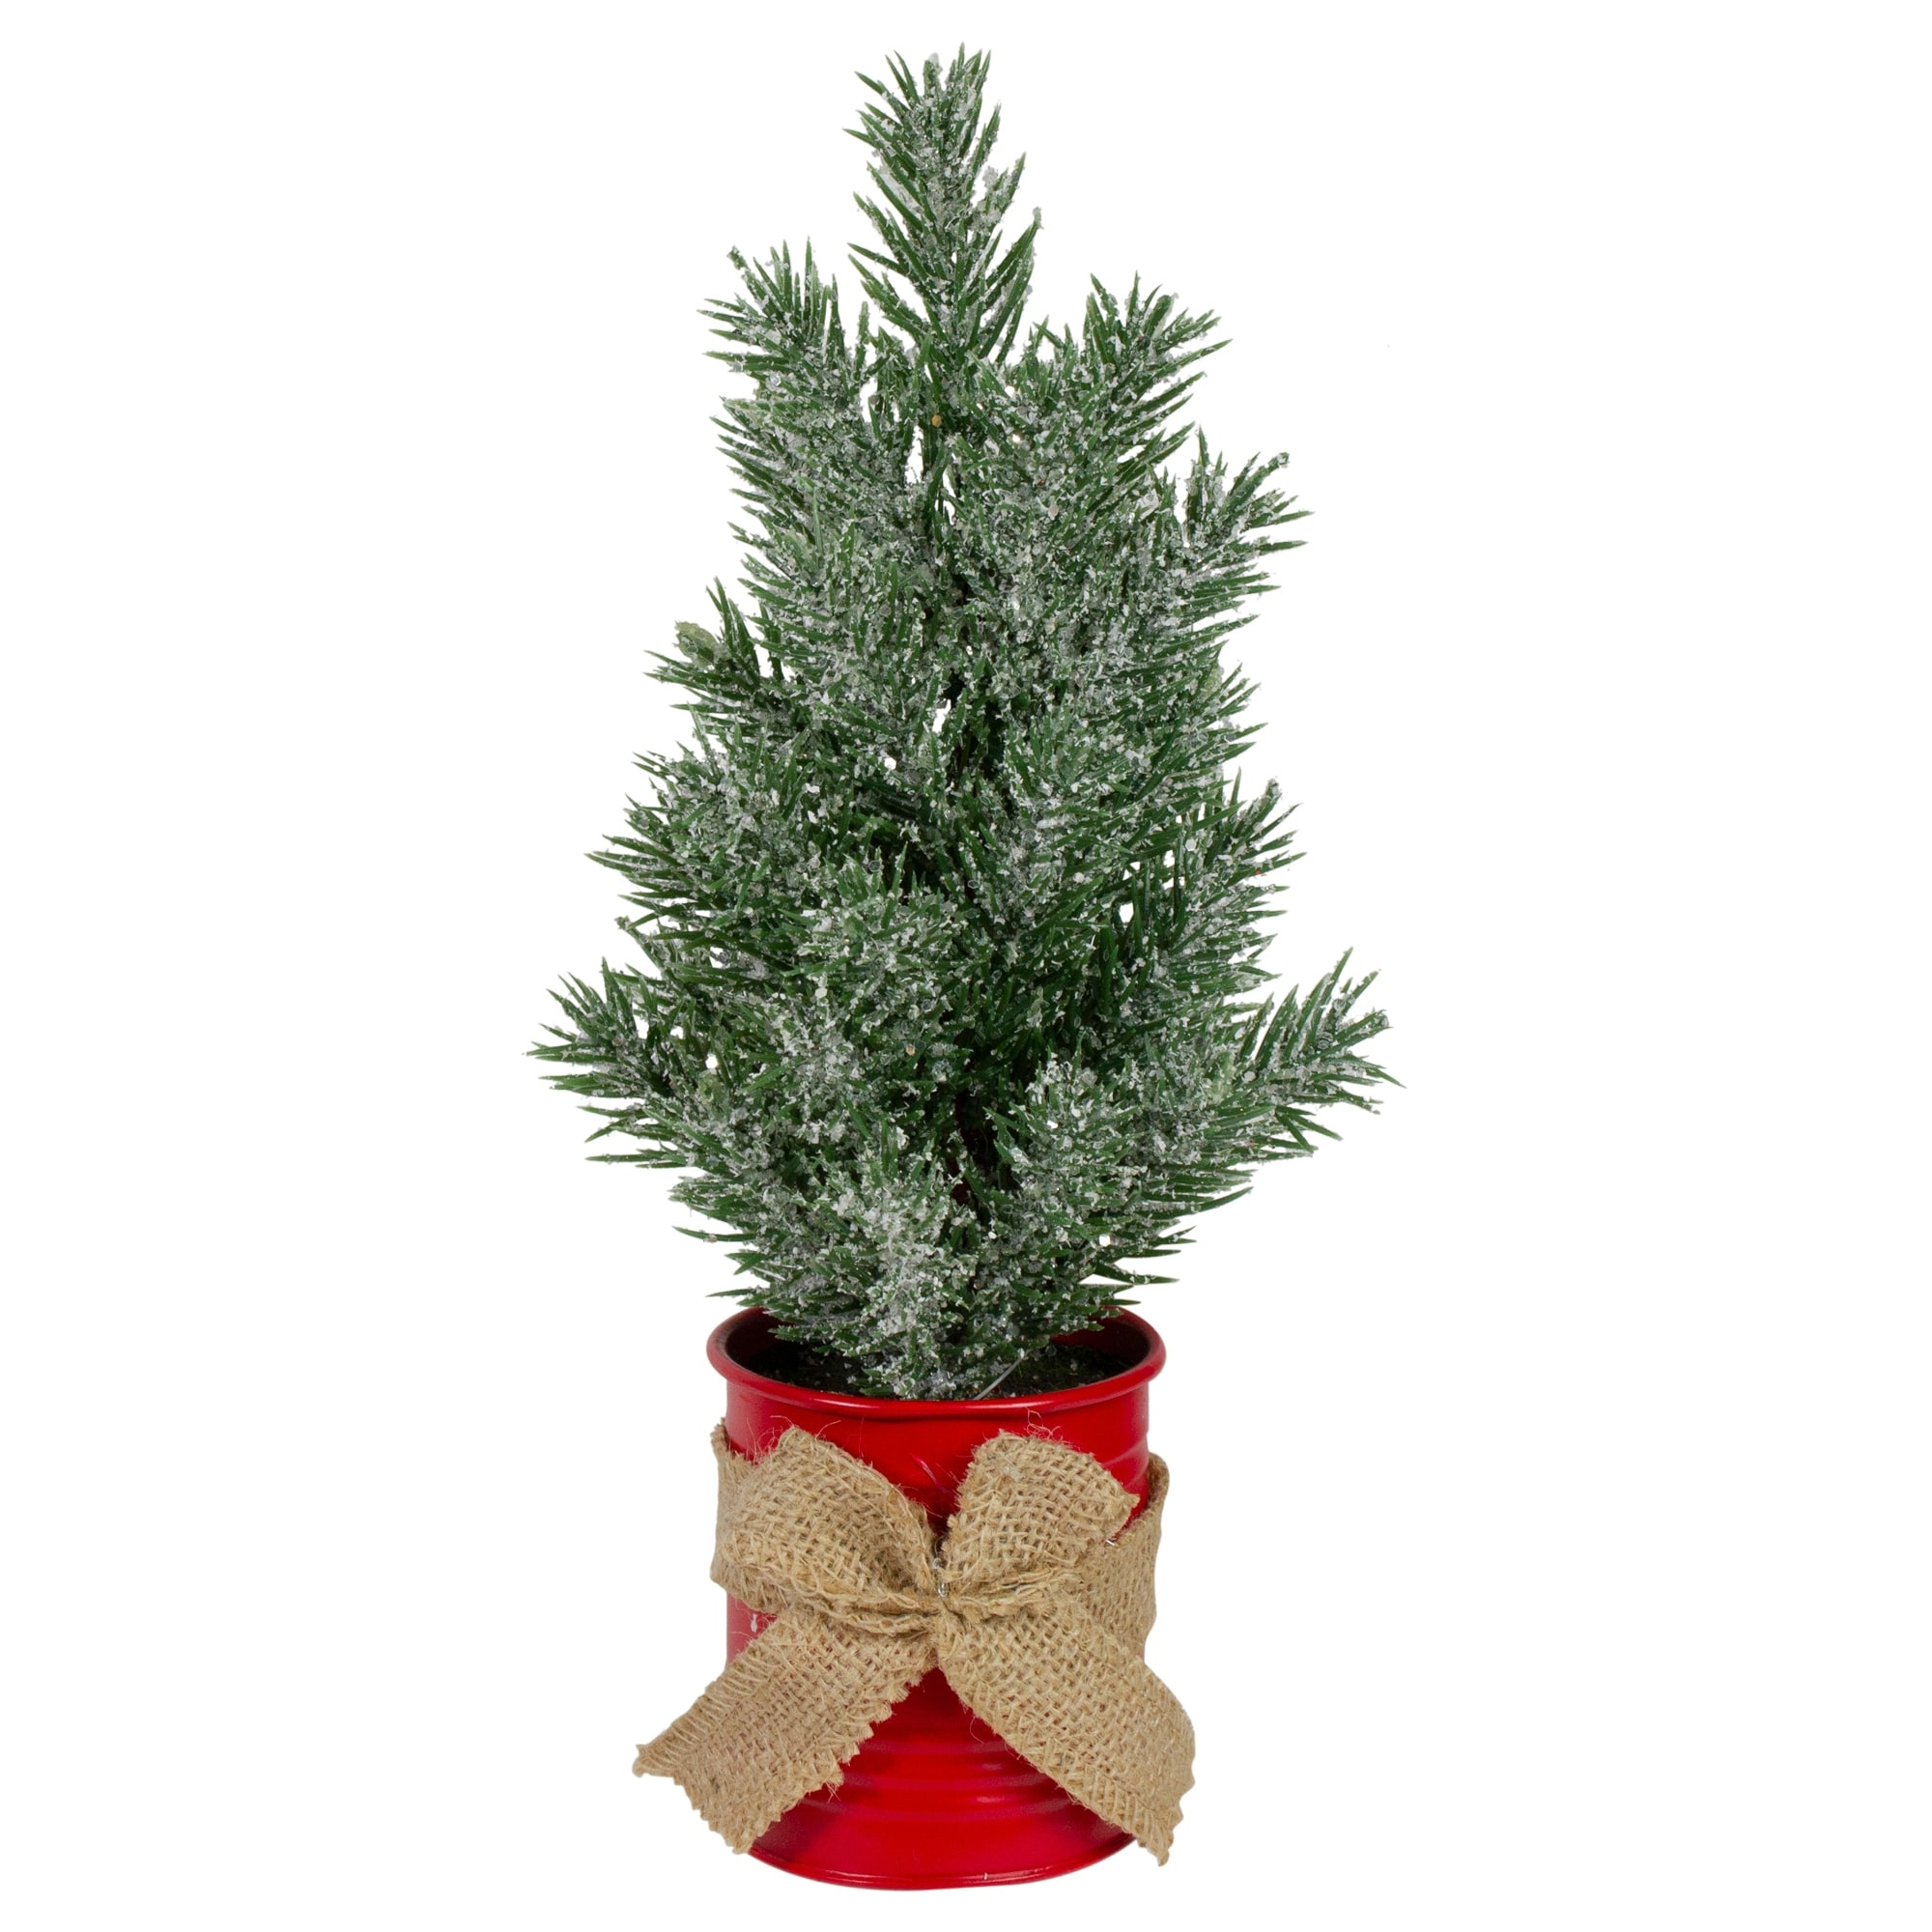 12 Frosted Upswept Mini Christmas Tree With Red Tin Base And Burlap Bow Unlit Overstock 32350898